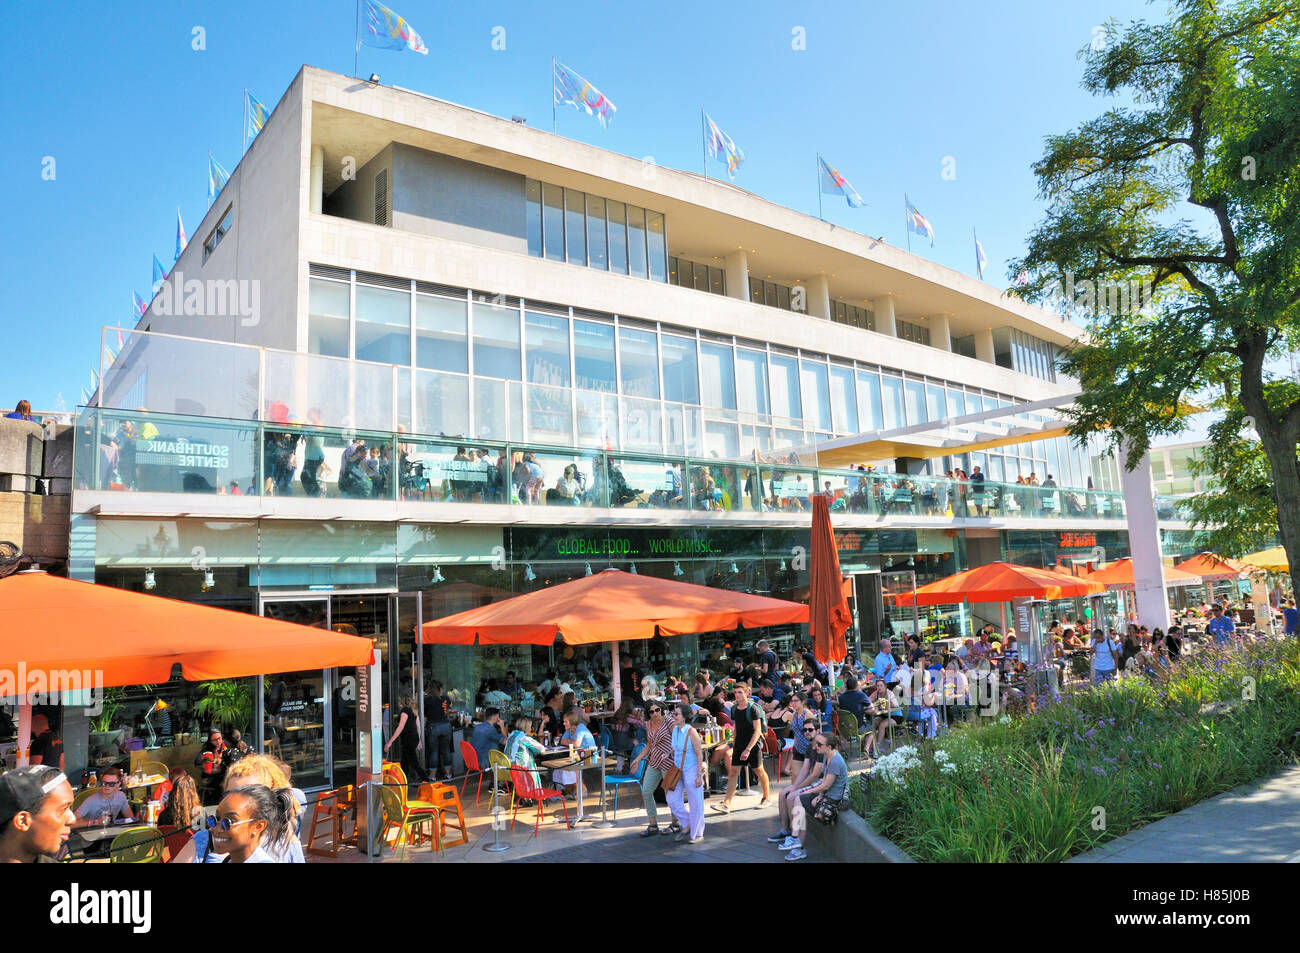 Cafes and restaurants outside the Royal Festival Hall, Southbank Centre, London, England, UK - Stock Image